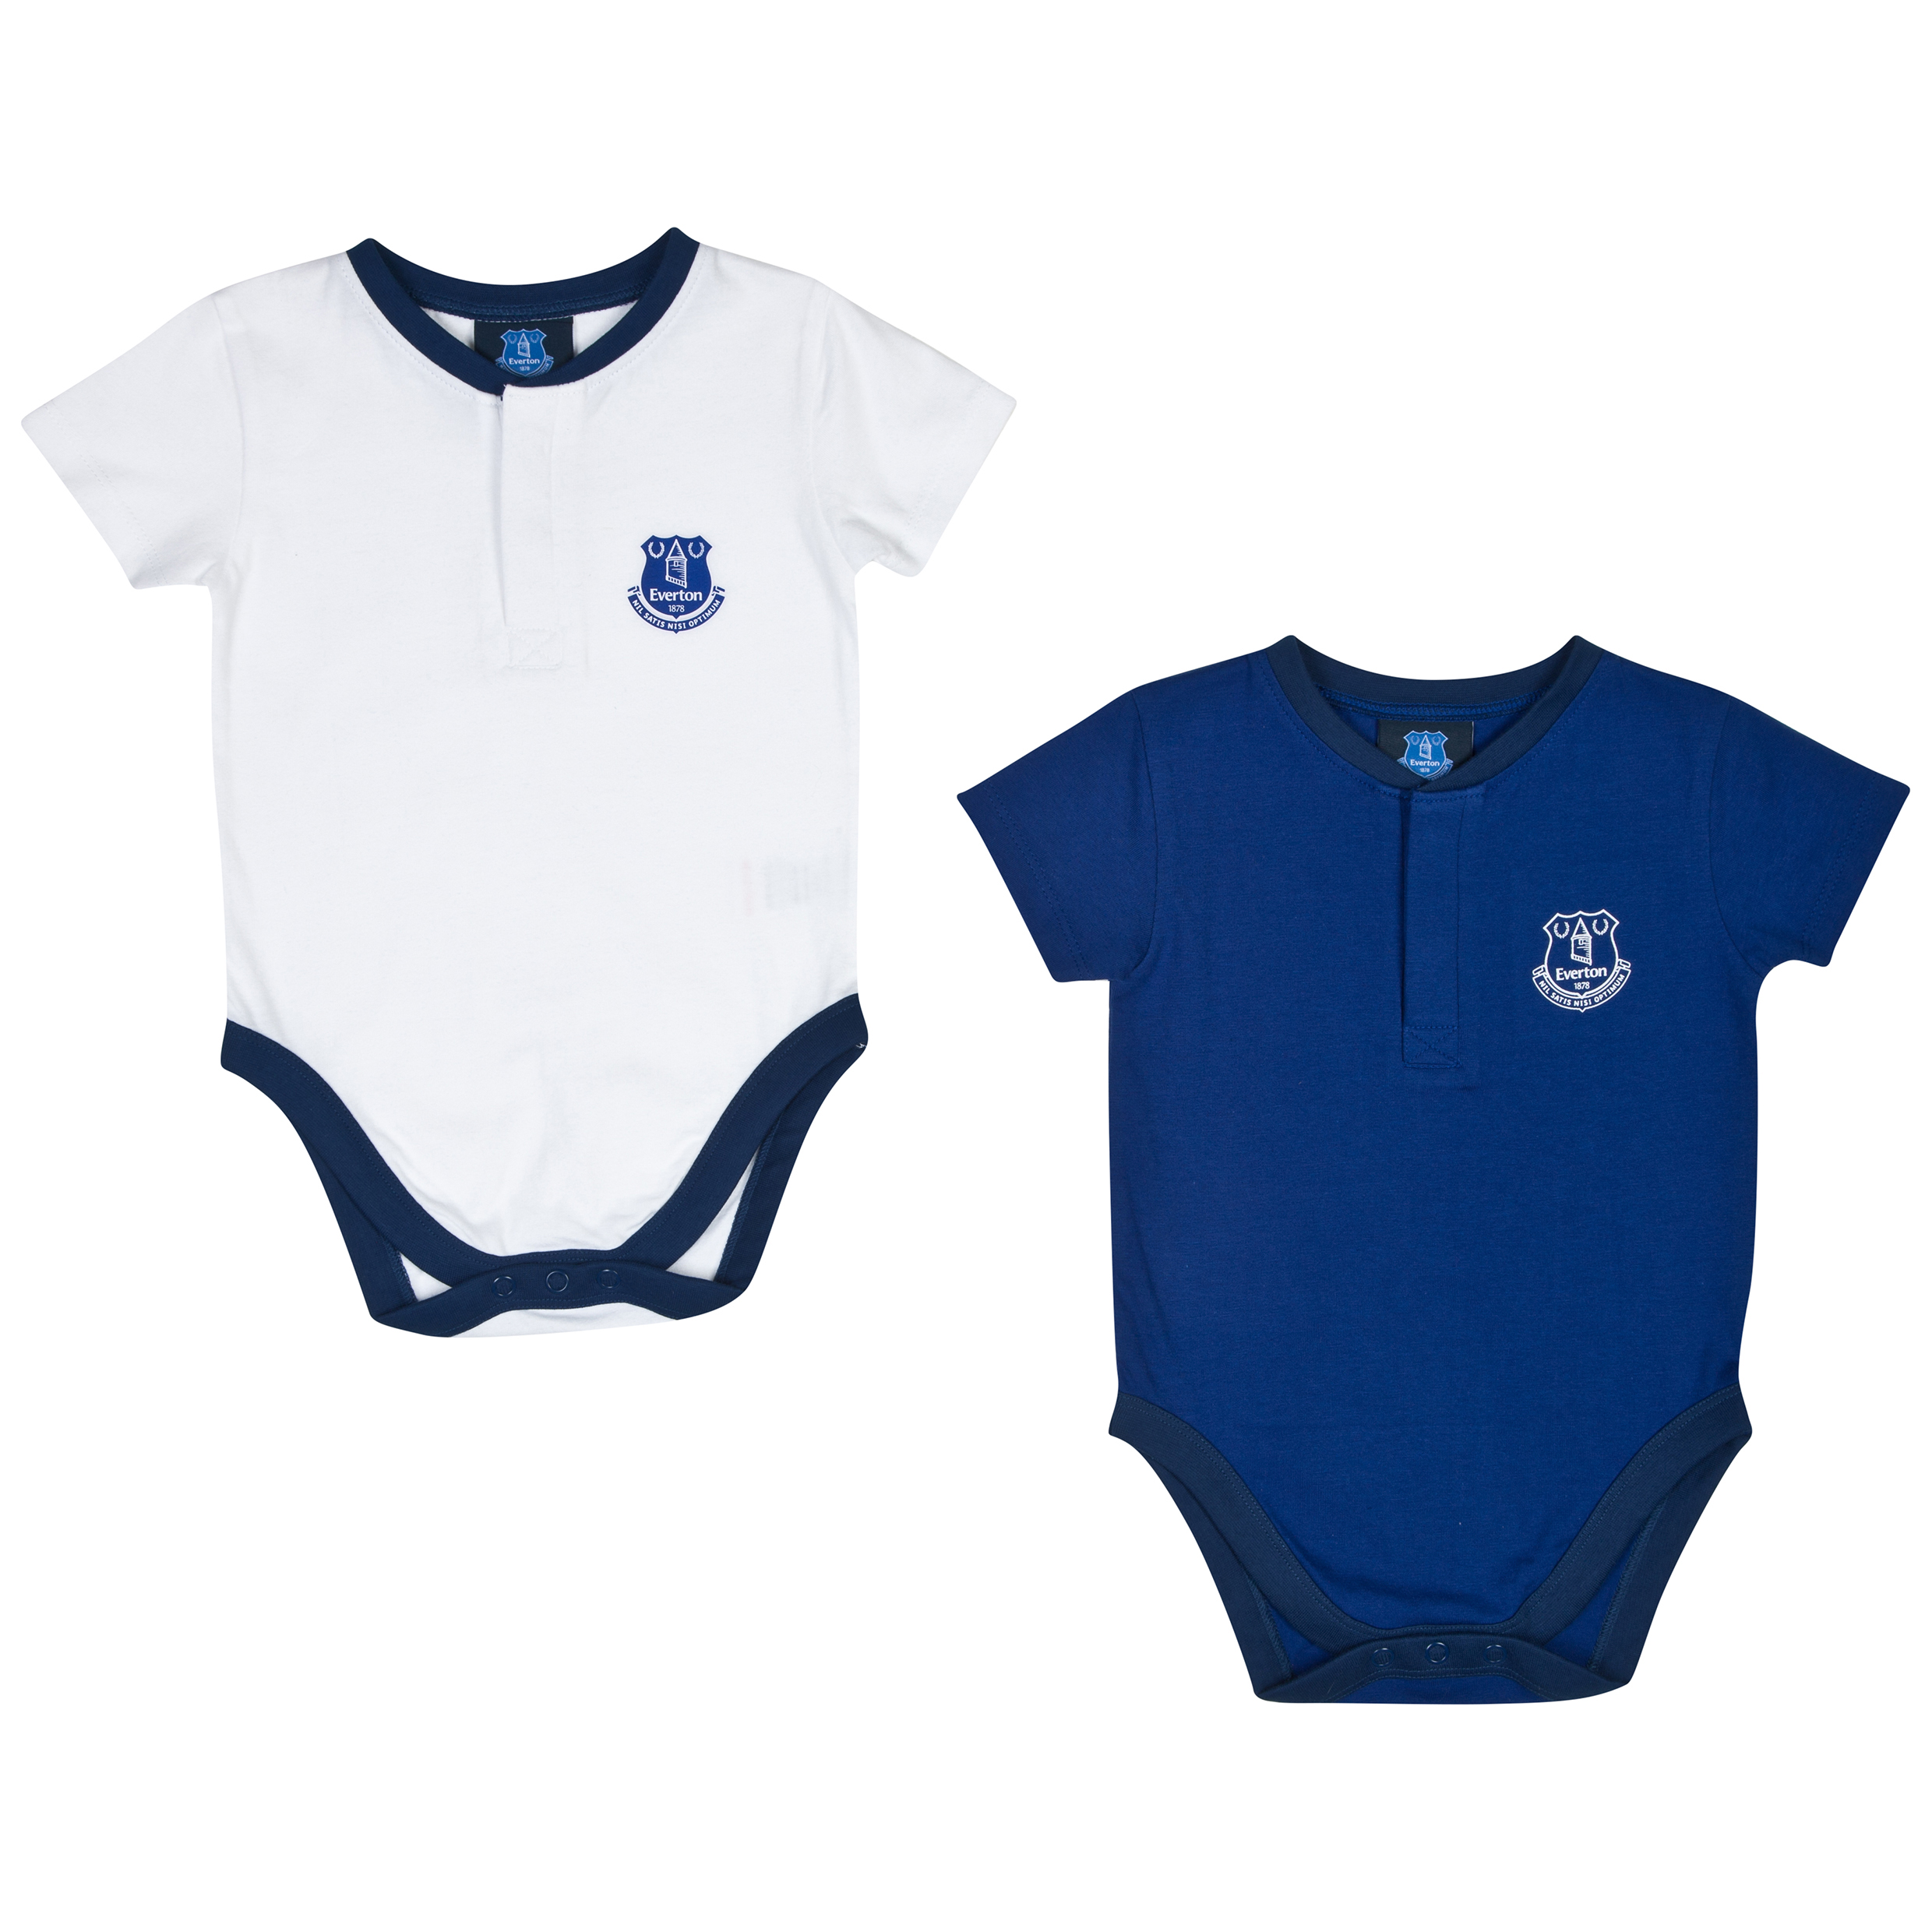 Everton 14/15 2Pk Kit Bodysuits - Everton Blue/White - Baby